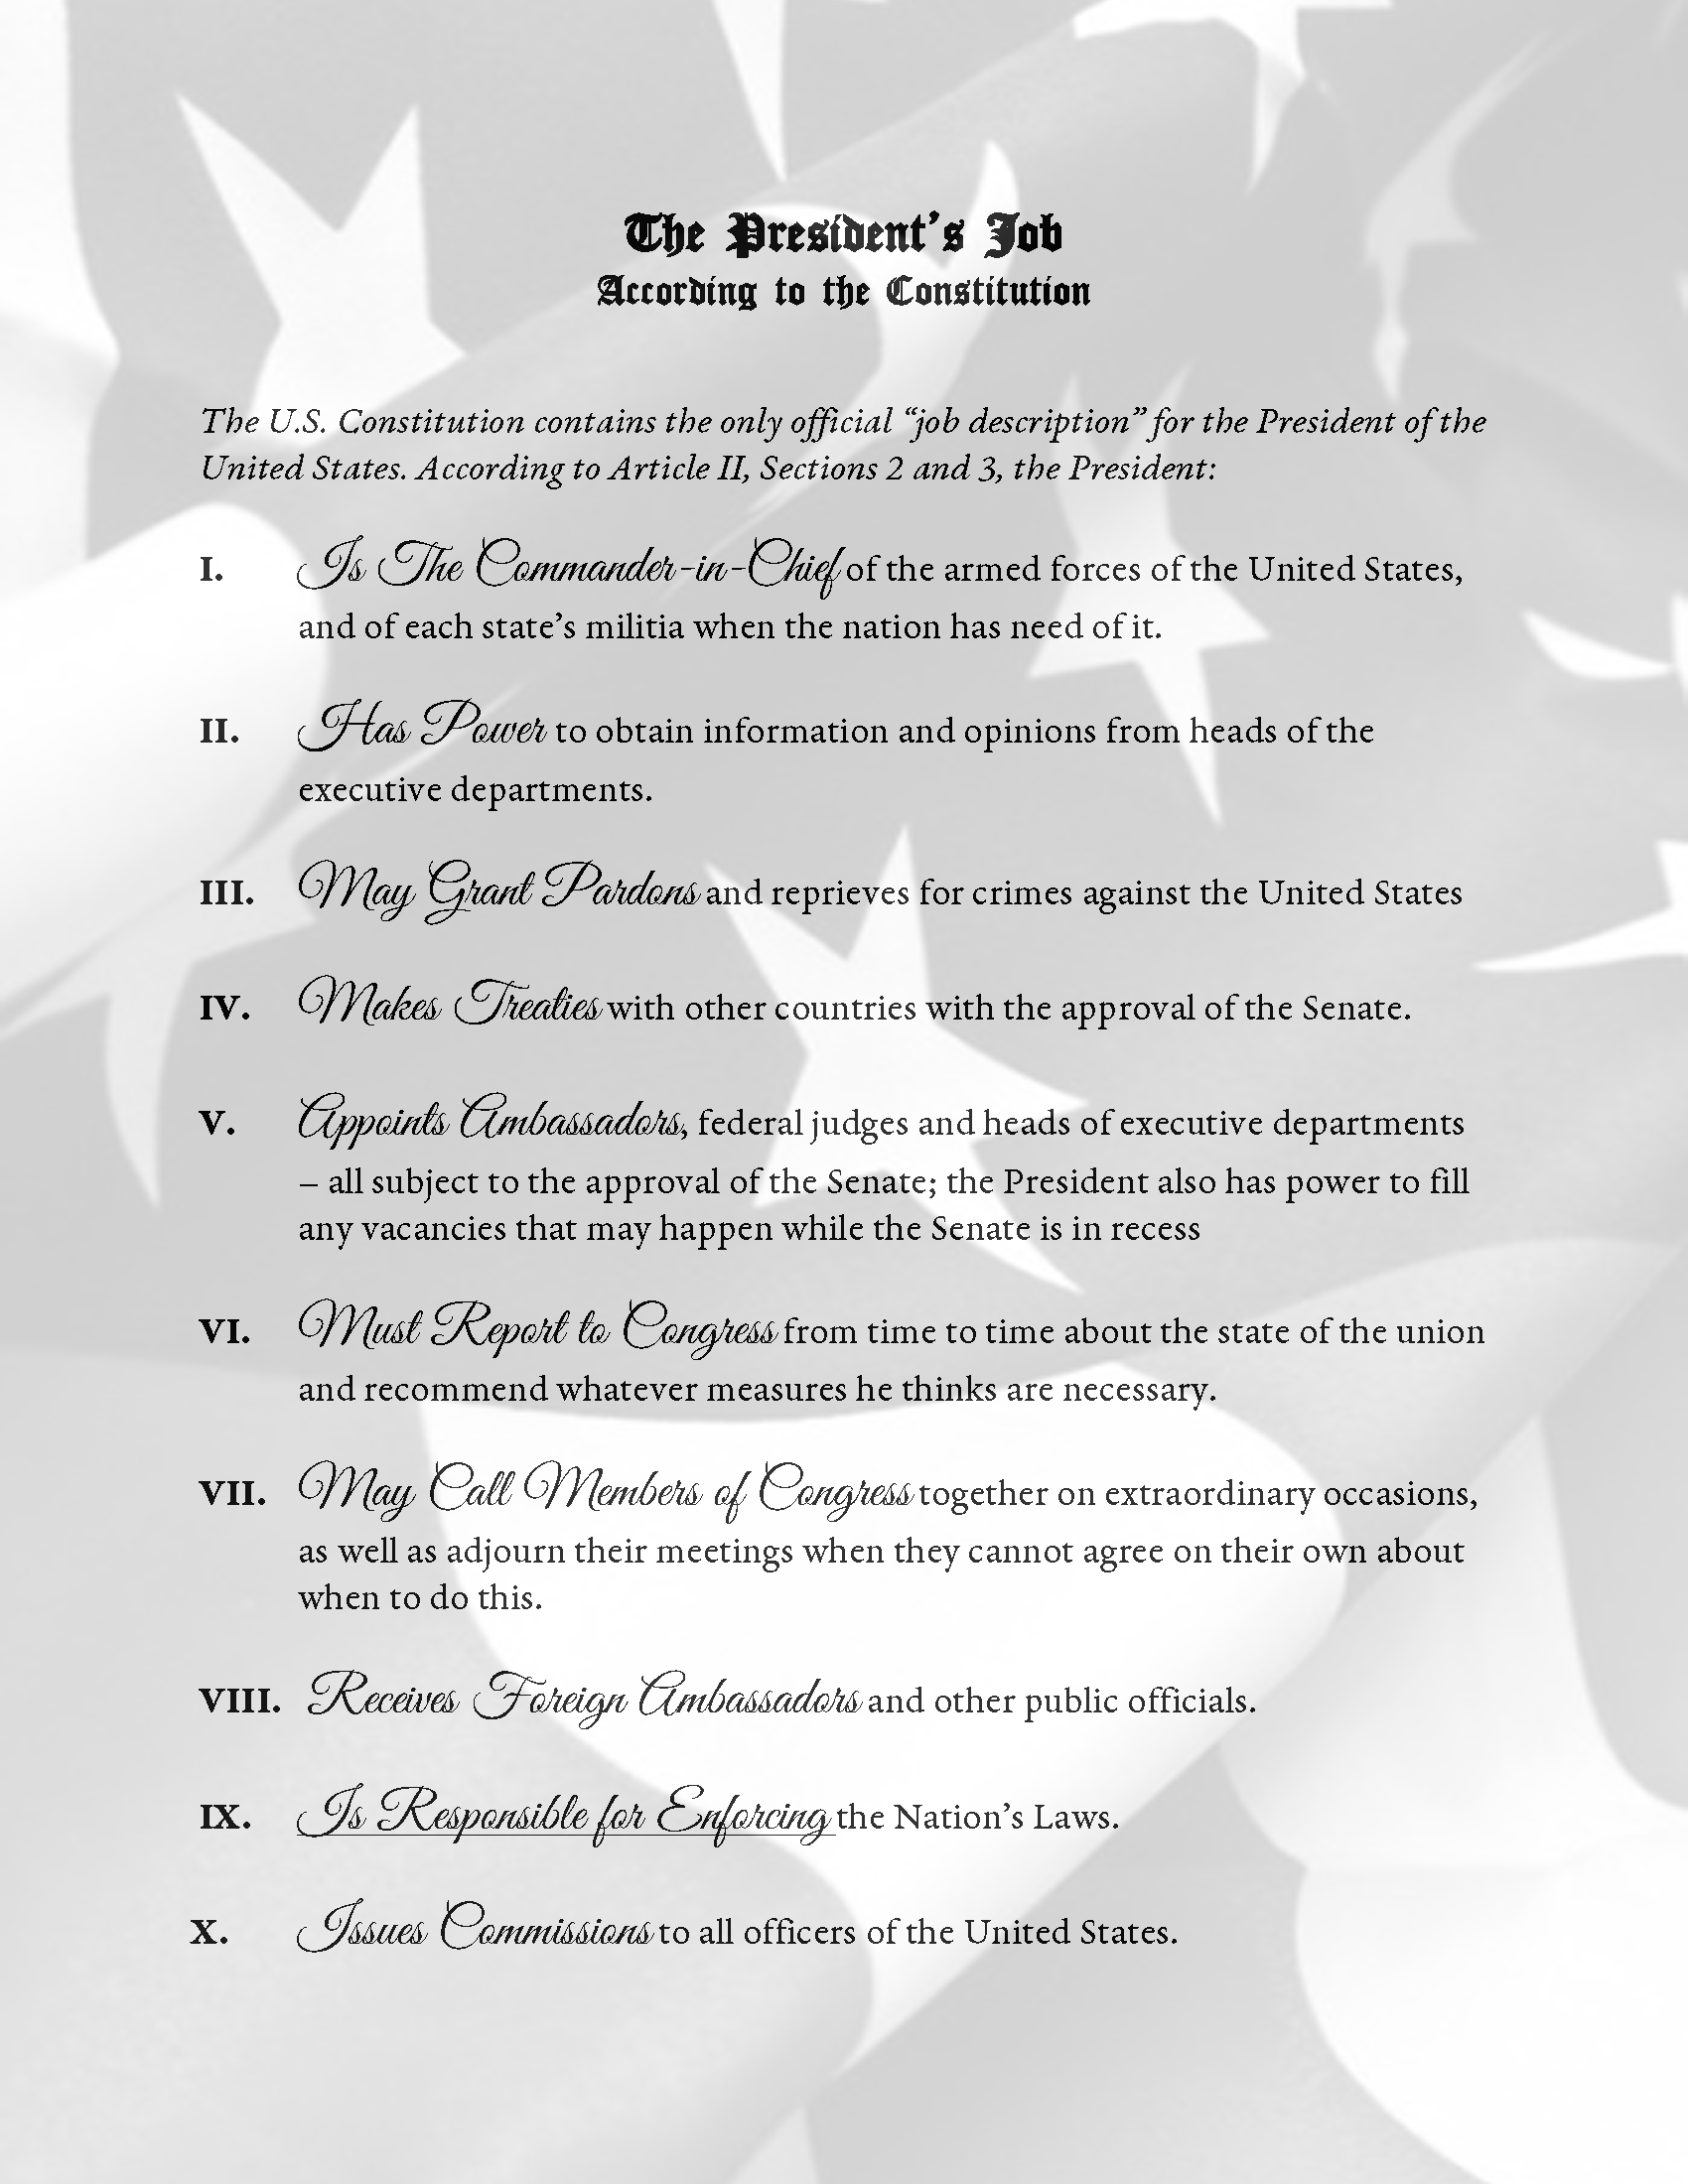 The Presidents Job According to the Constitution